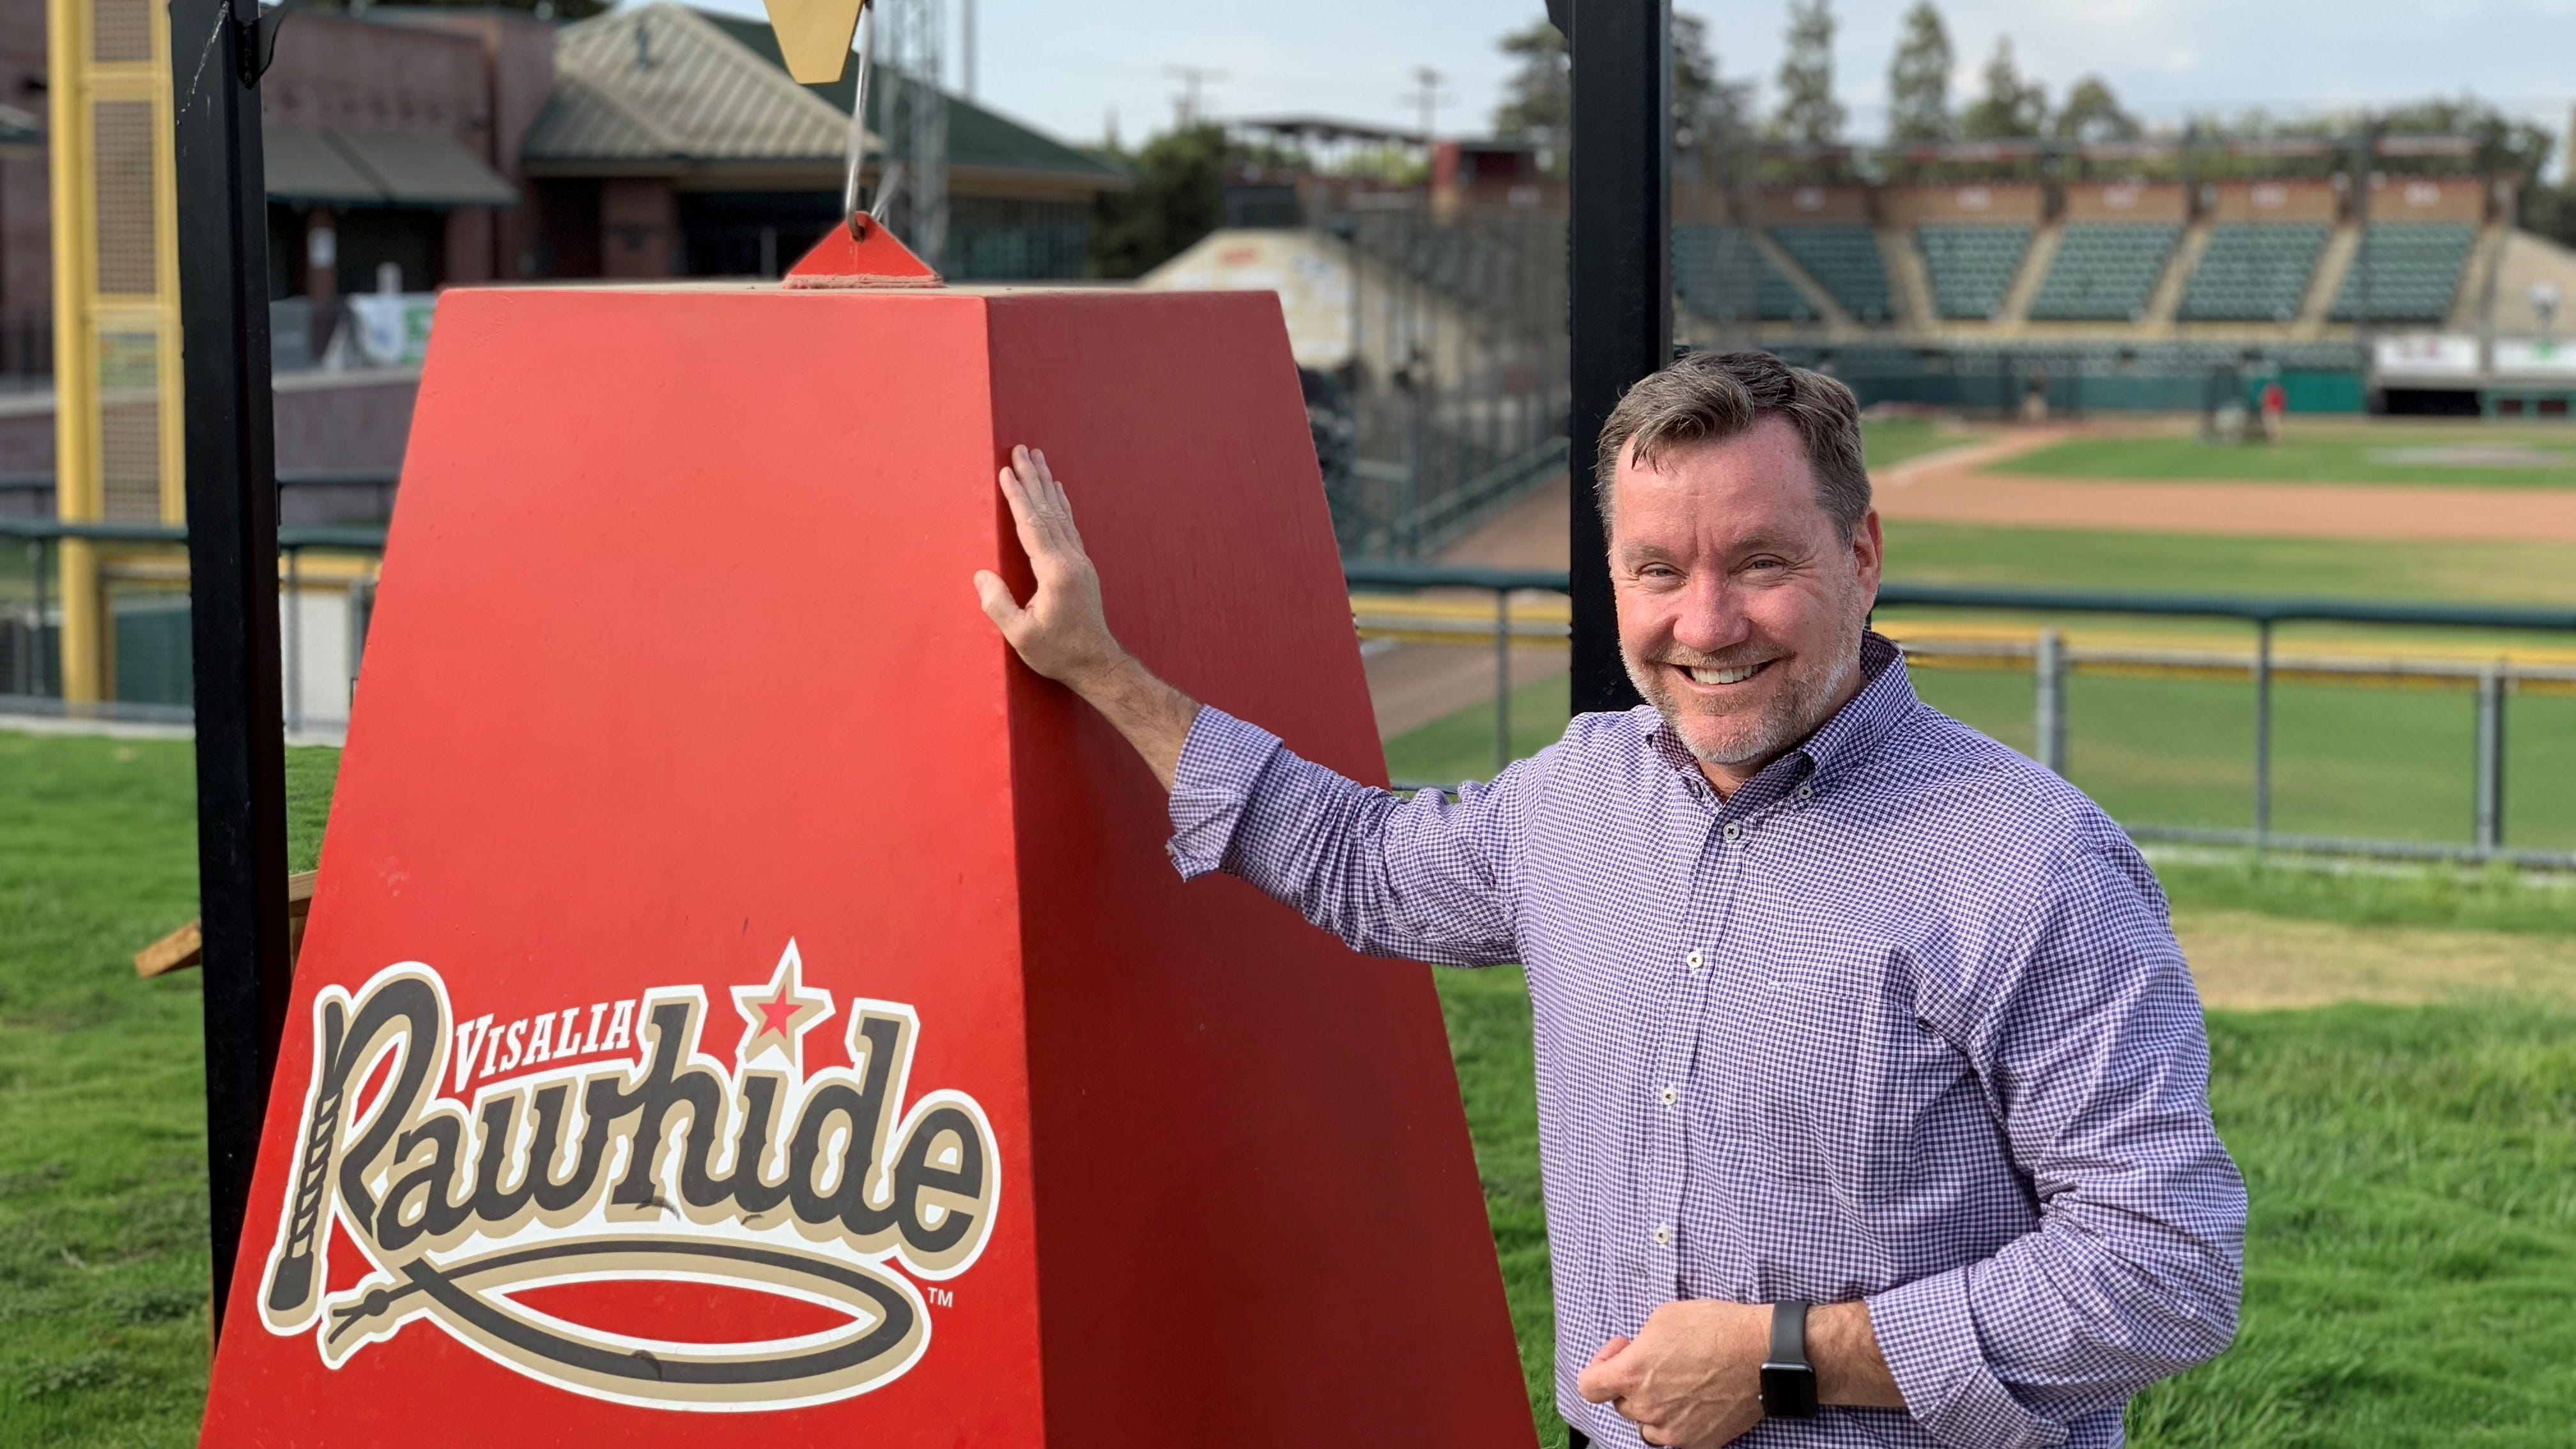 BREAKING: Visalia Rawhide owner announces he's selling team, says club on strong ground